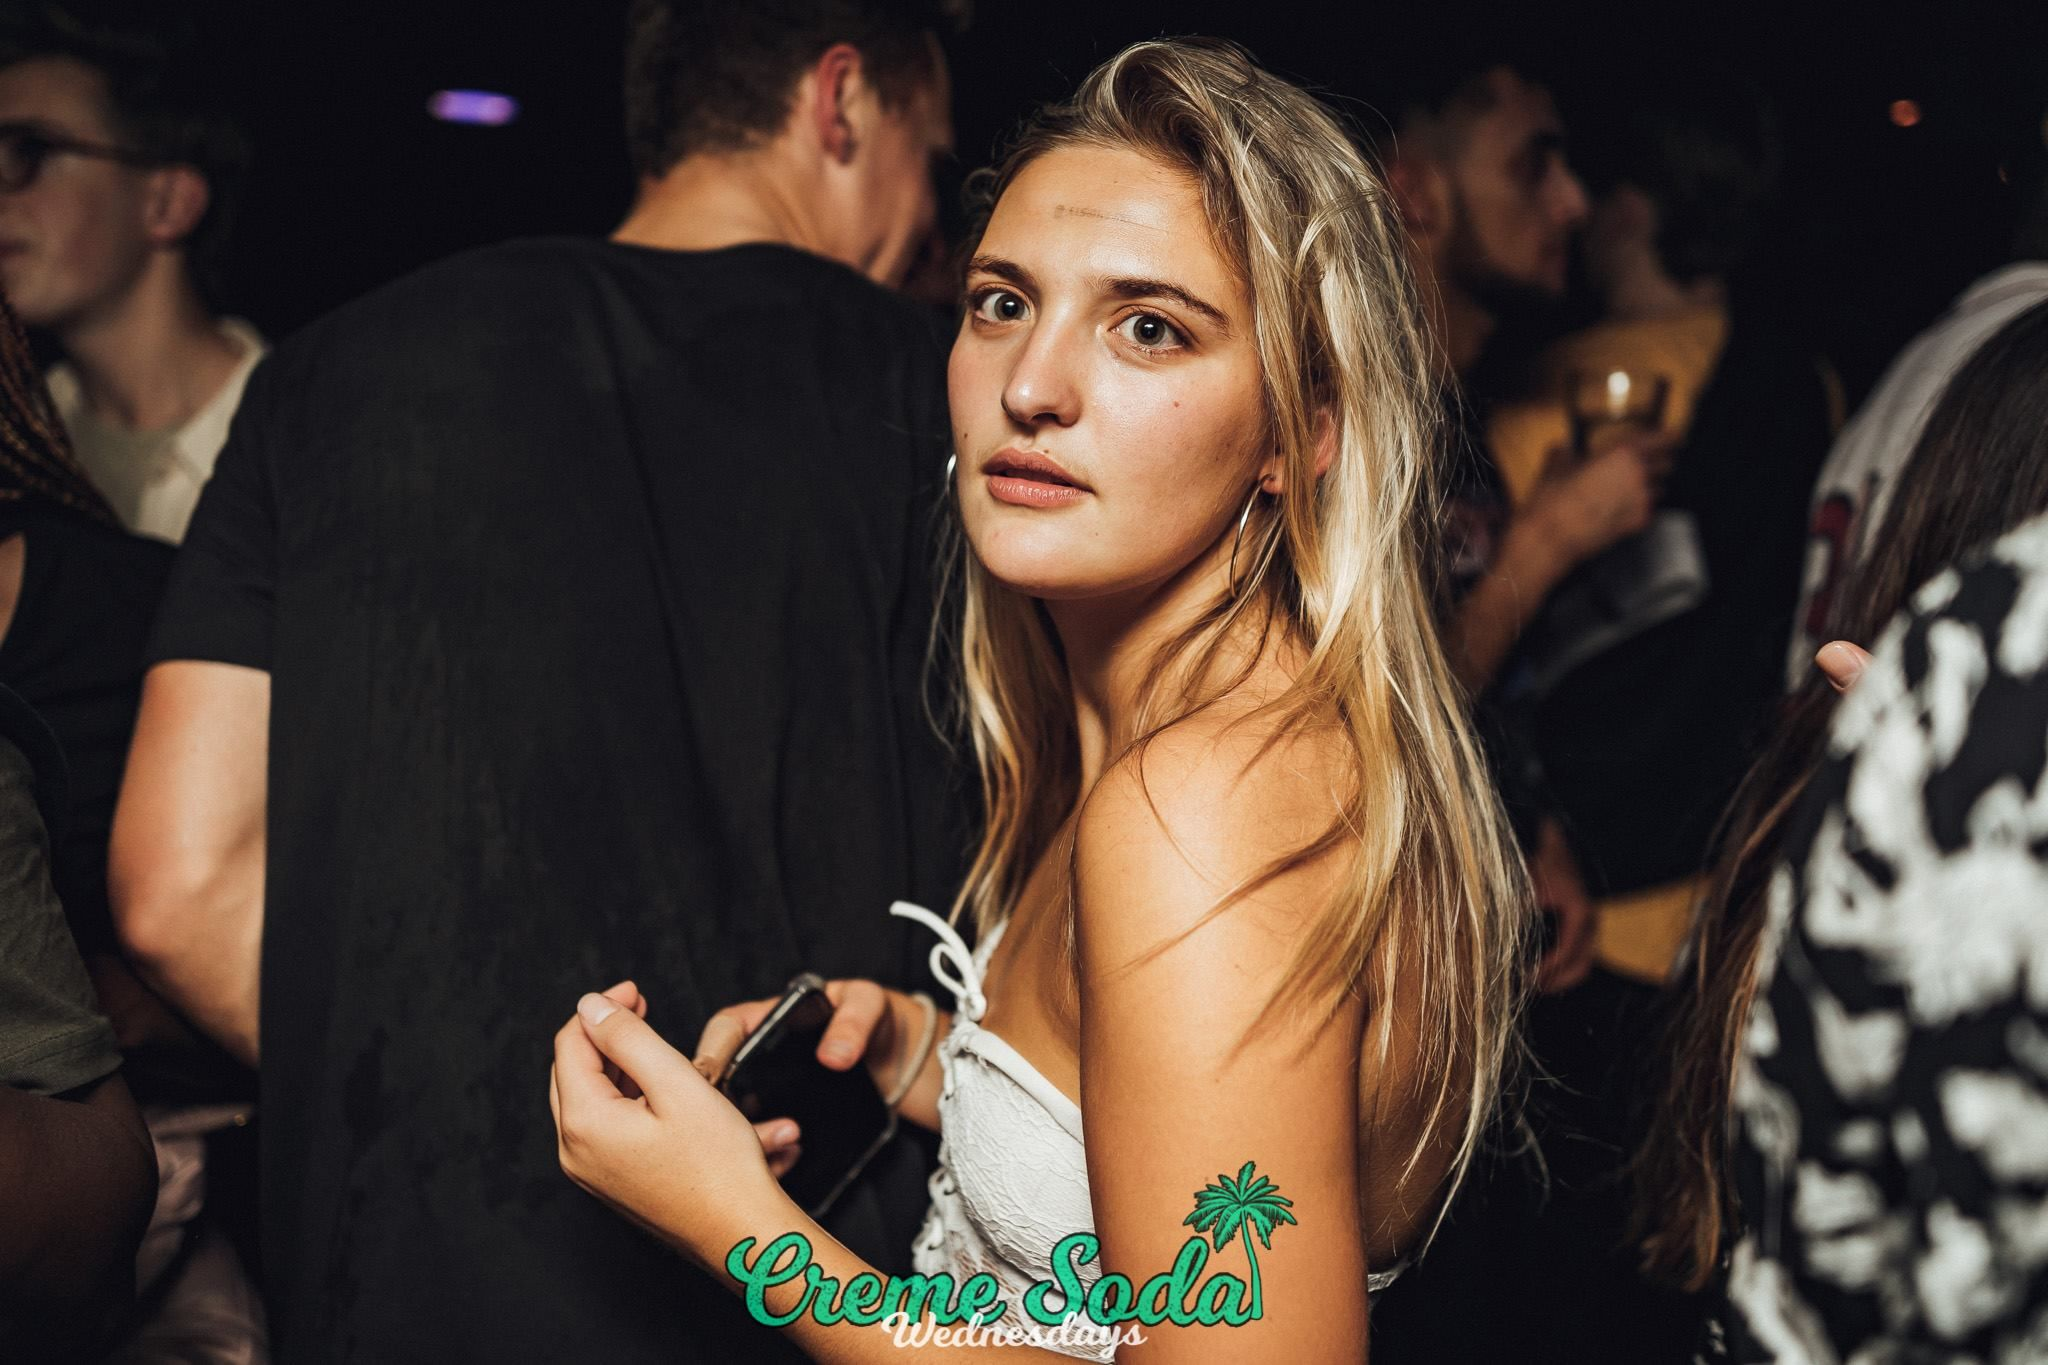 Image may contain: Woman, Girl, Female, Blonde, Night Life, Night Club, Club, Person, People, Human